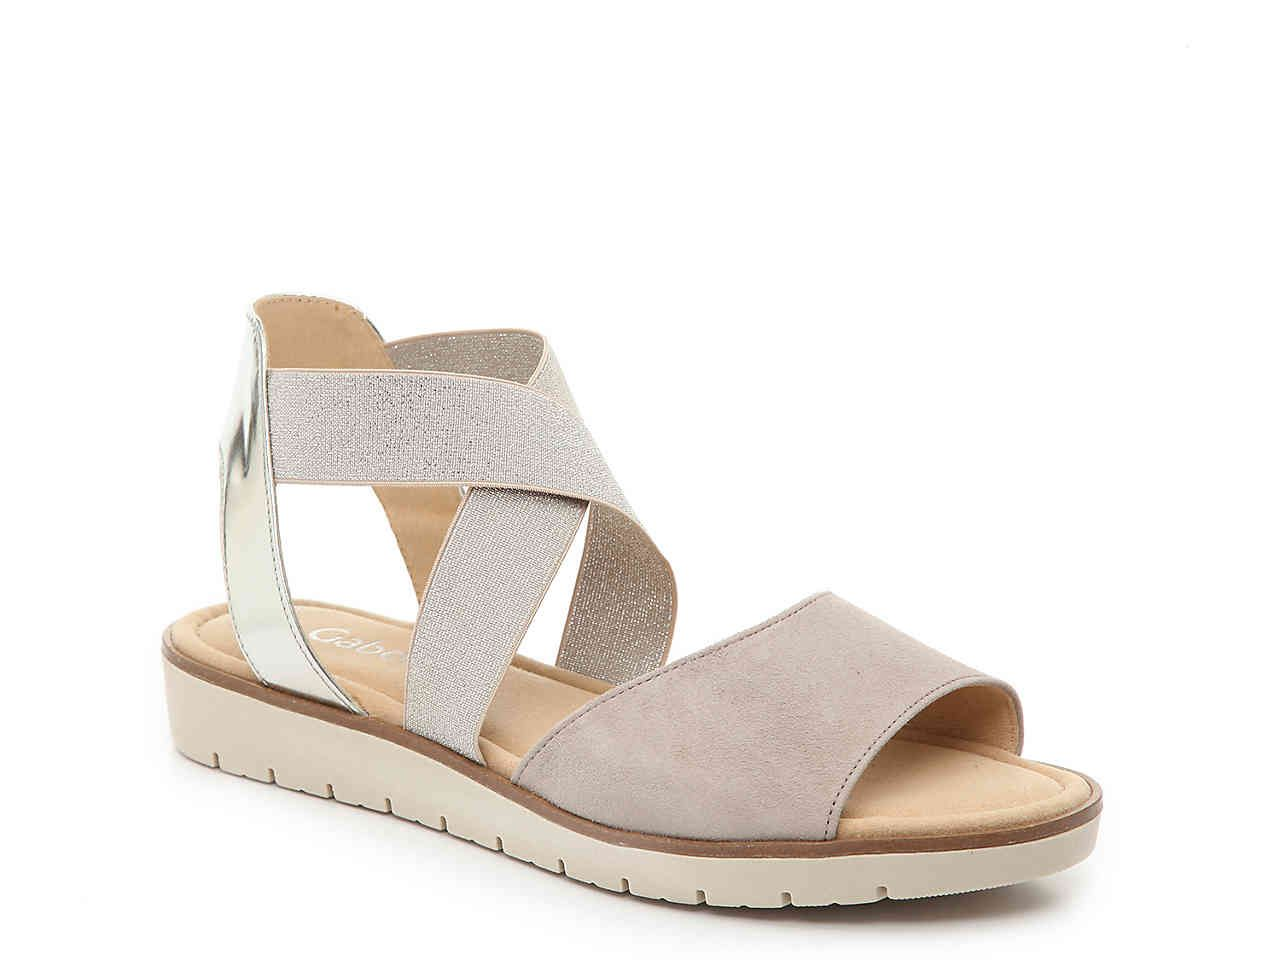 Gabor 65572 Sandal Women's Shoes | DSW | shoes in 2019